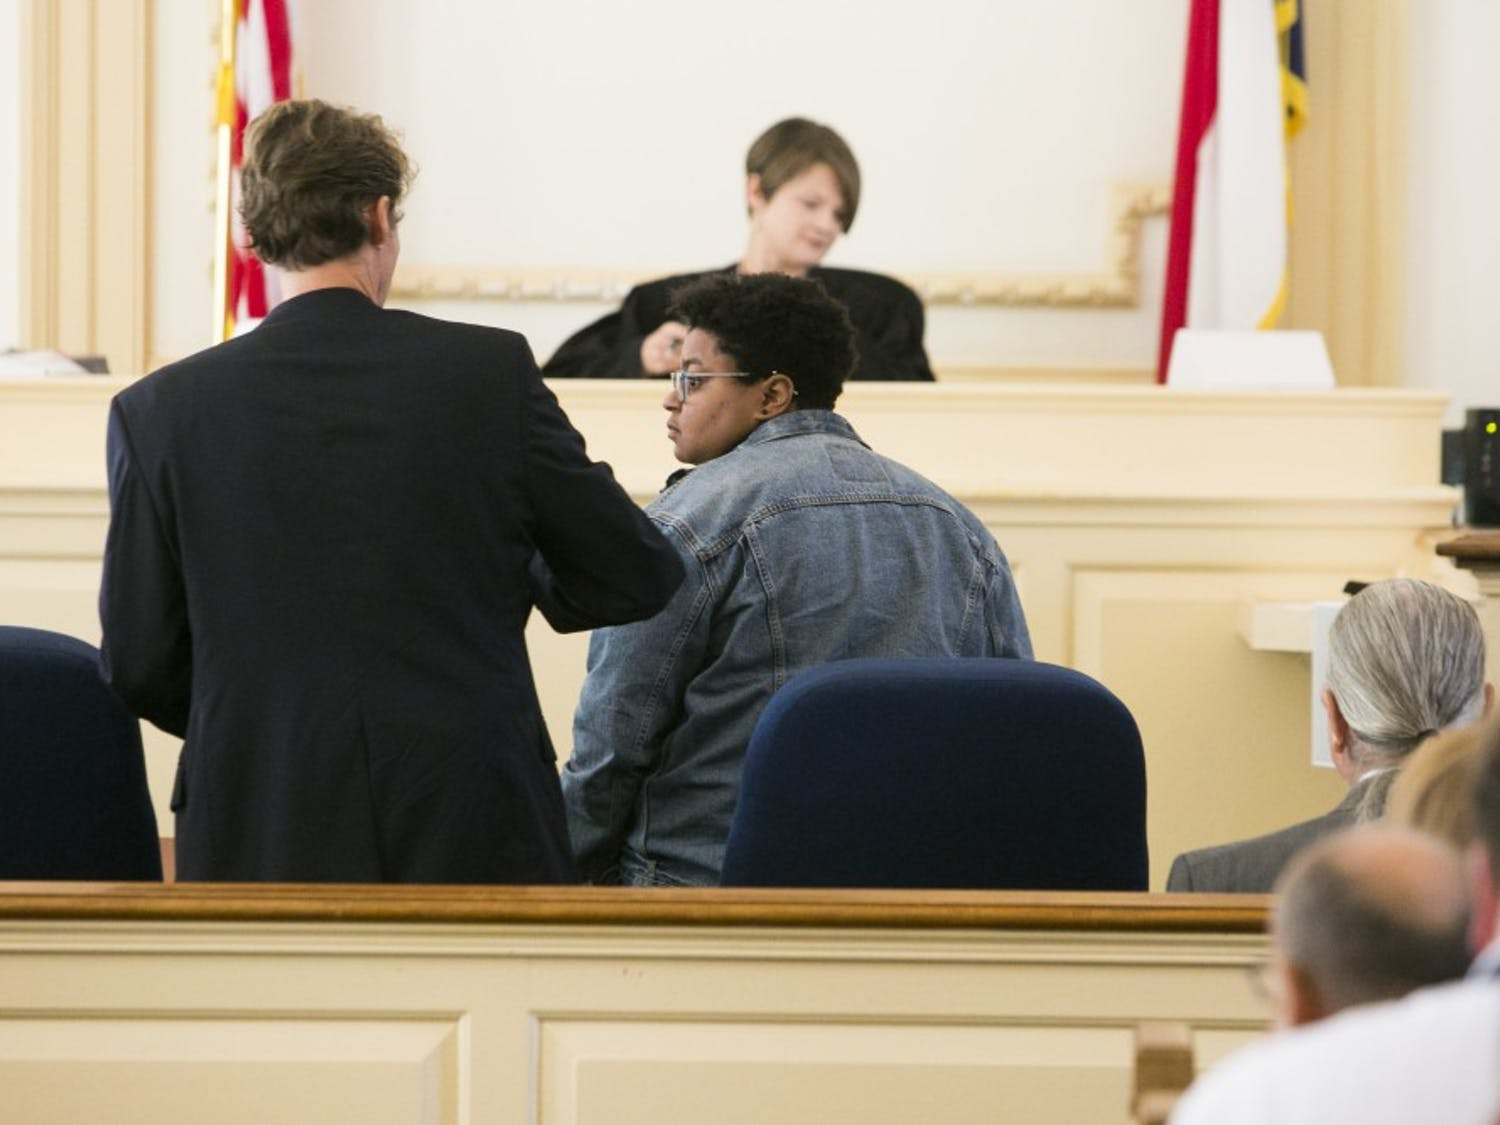 Maya Little and her lawyer prepare for the start of her hearing on Monday, Oct. 15, 2018, in Hillsboro N.C.